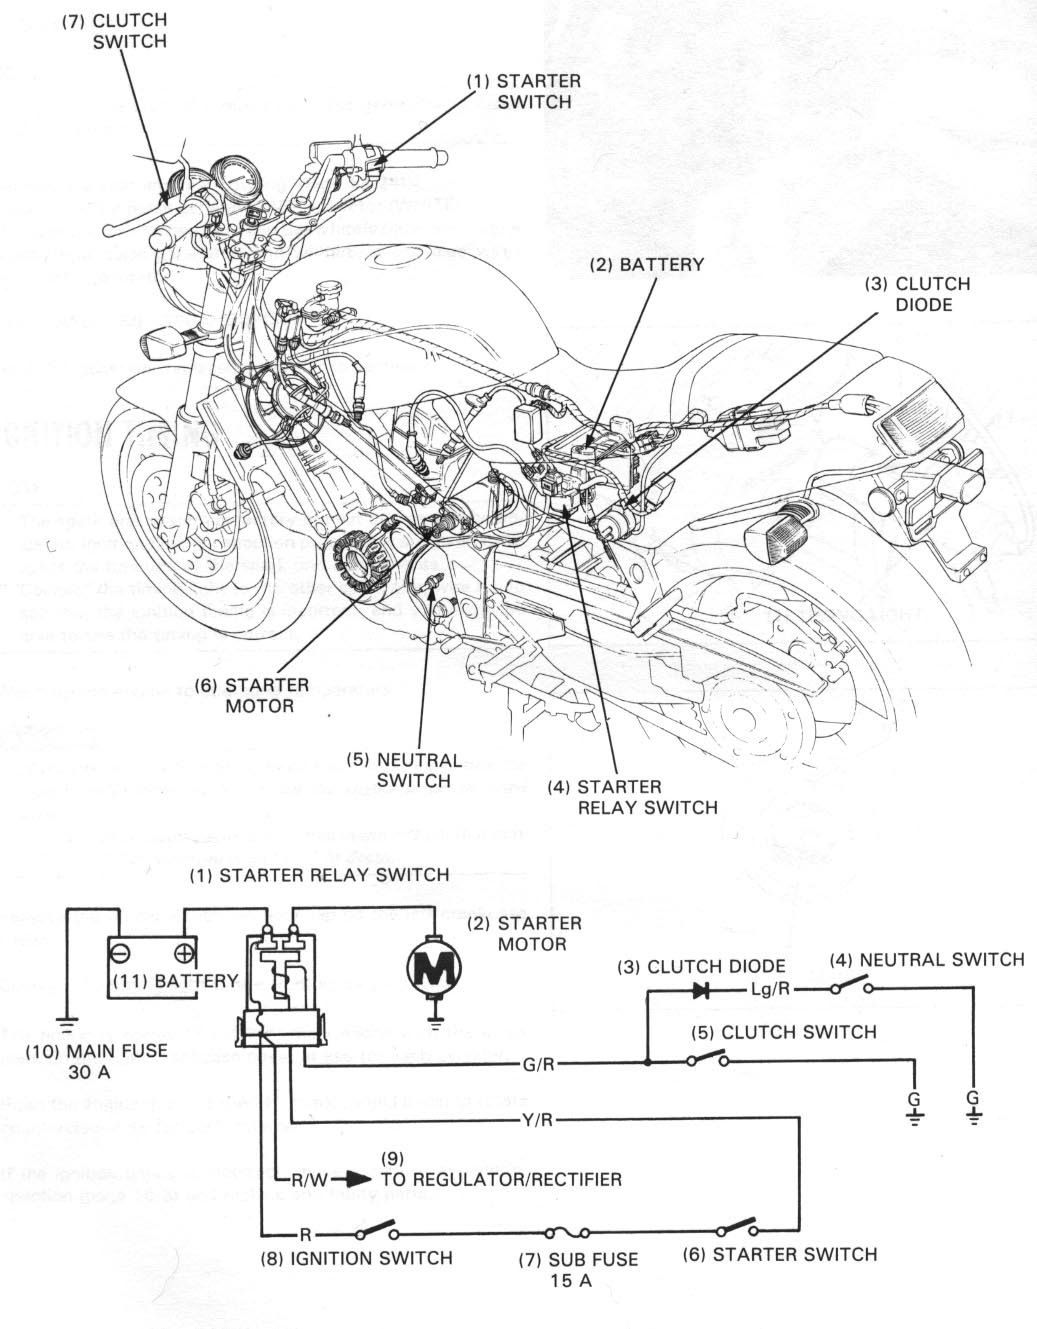 Honda Nt650 Service Manual Section 17 Electric Starter